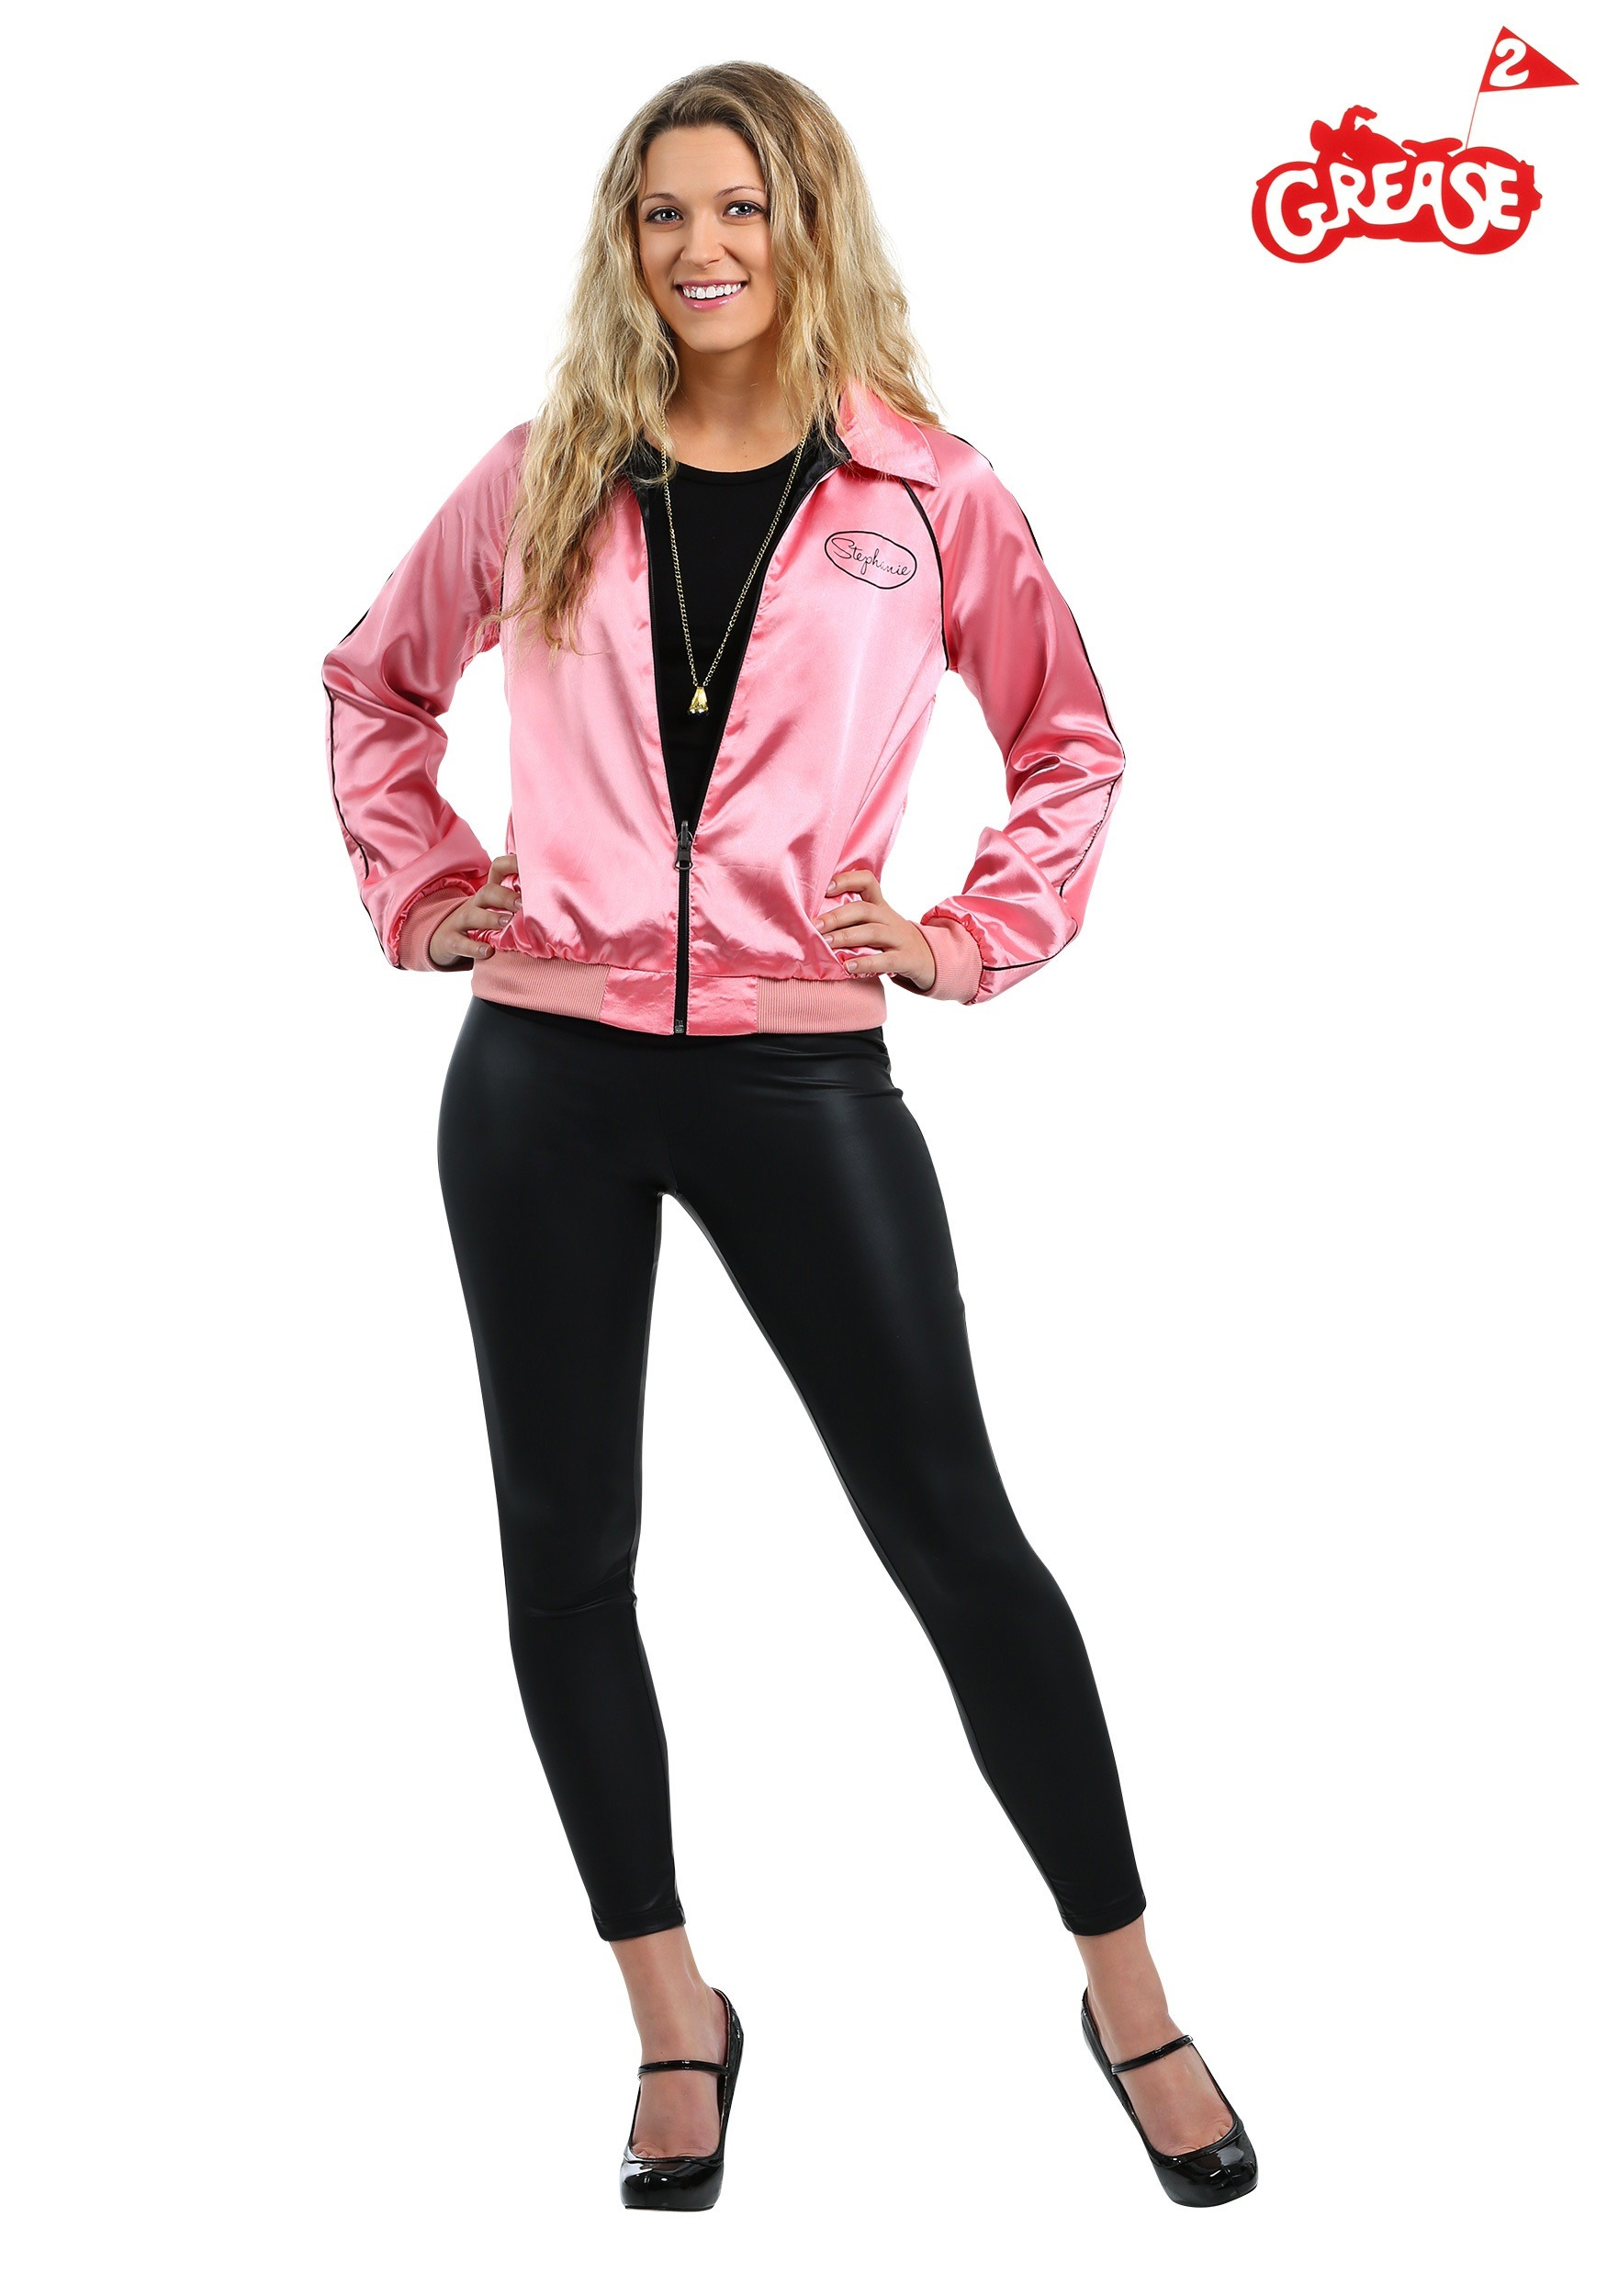 Stephanies Pink Ladies Jacket Costume from Grease 2